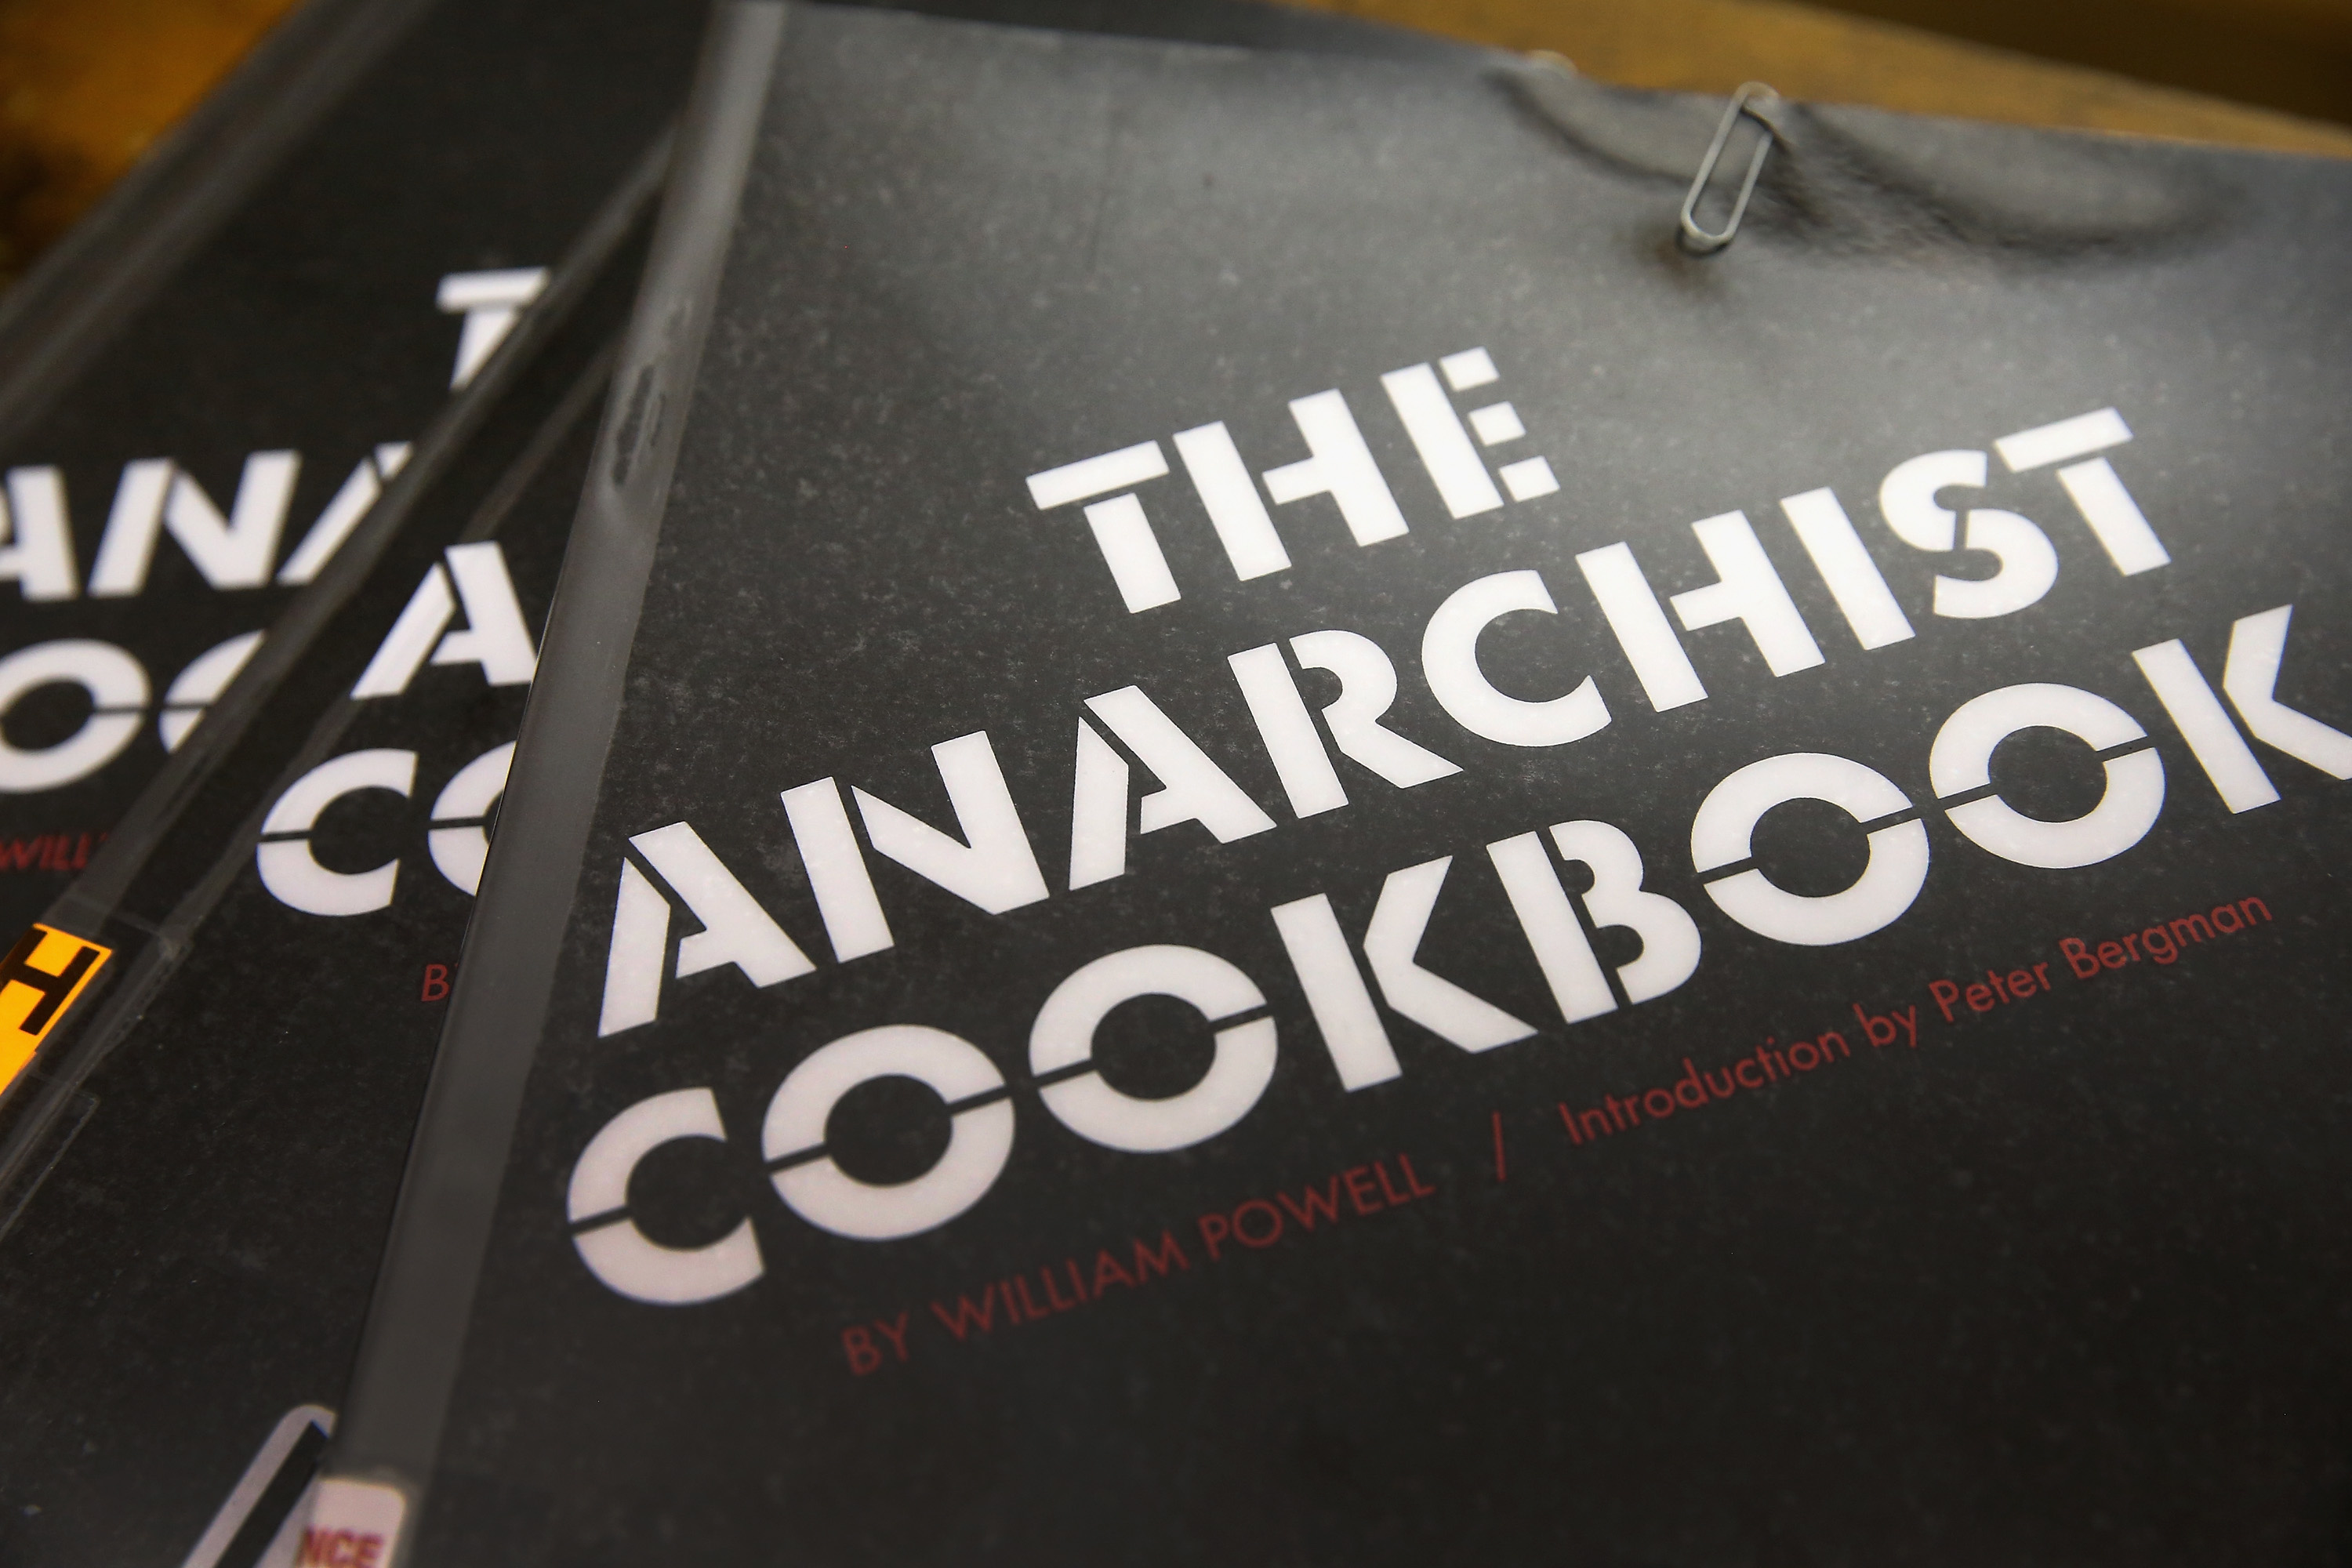 The contentious history of the Anarchist Cookbook